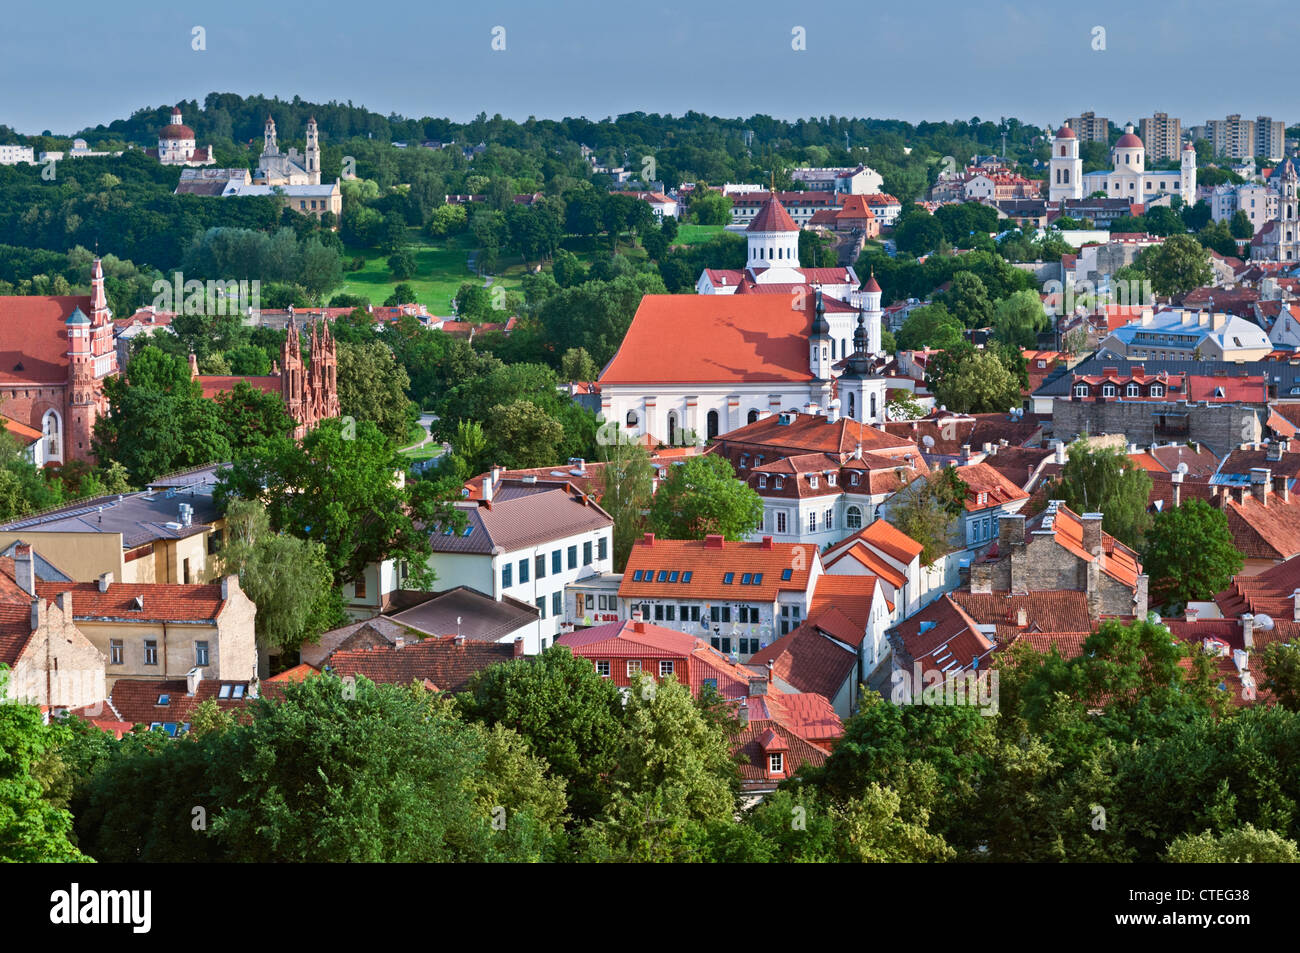 City view to Church of St Michael Vilnius Lithuania - Stock Image